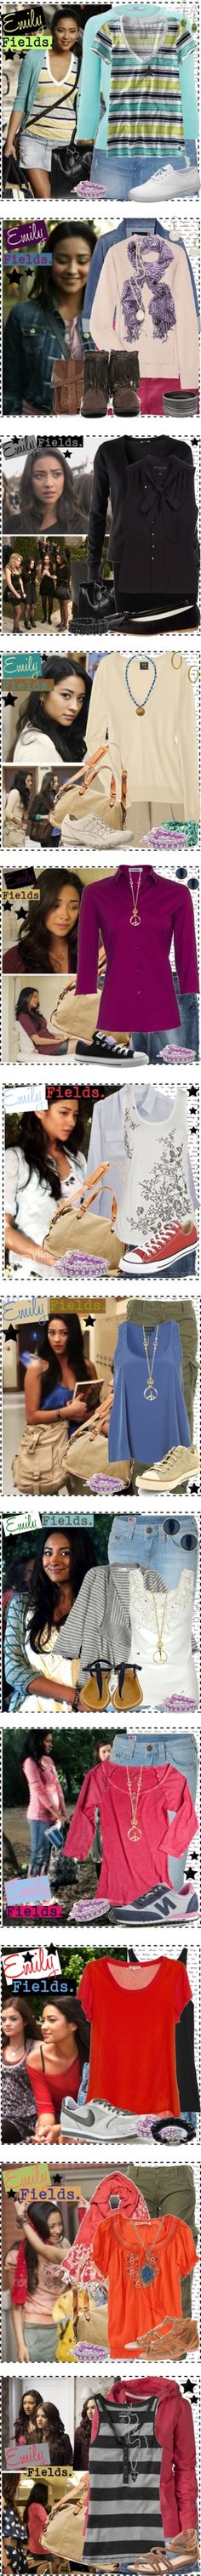 """""""Emily Fields [Pretty Little Liars]."""" by silver-screen-style ❤ liked on Polyvore"""